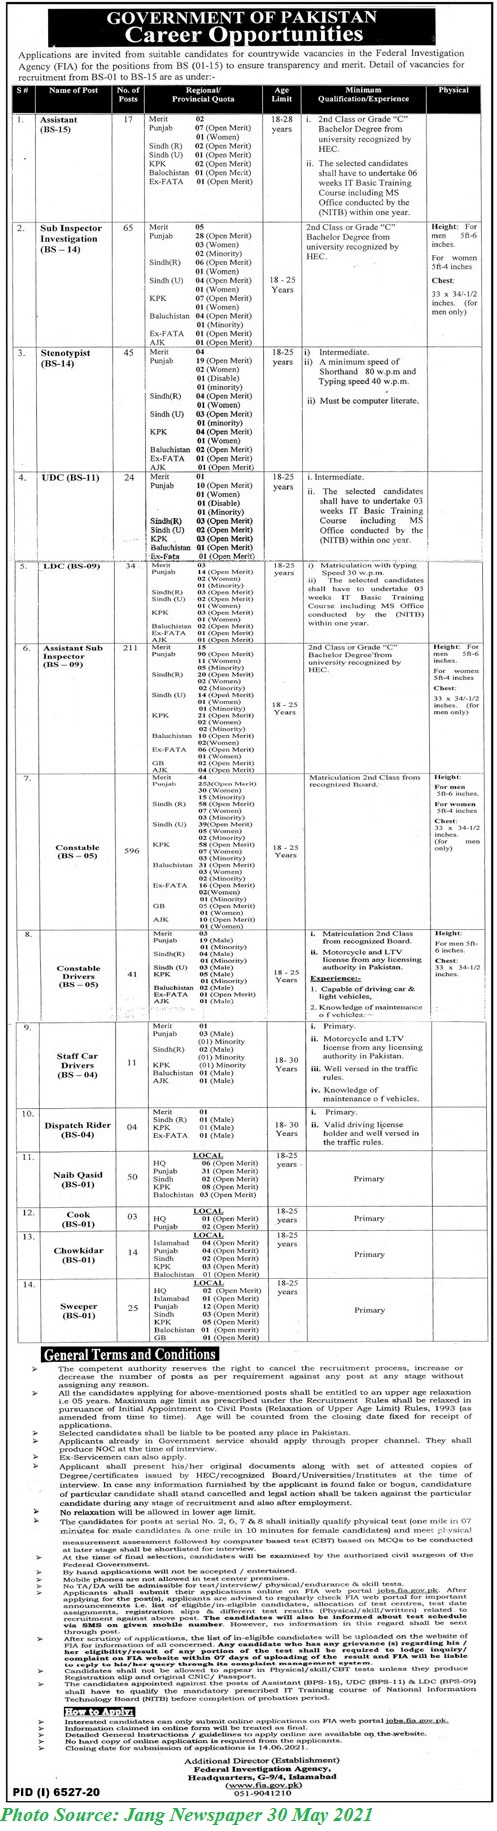 FIA Jobs 2021 - Latest Jobs in Federal Investigation Agency FIA June 2021 Apply Online 1190+ Posts Announced